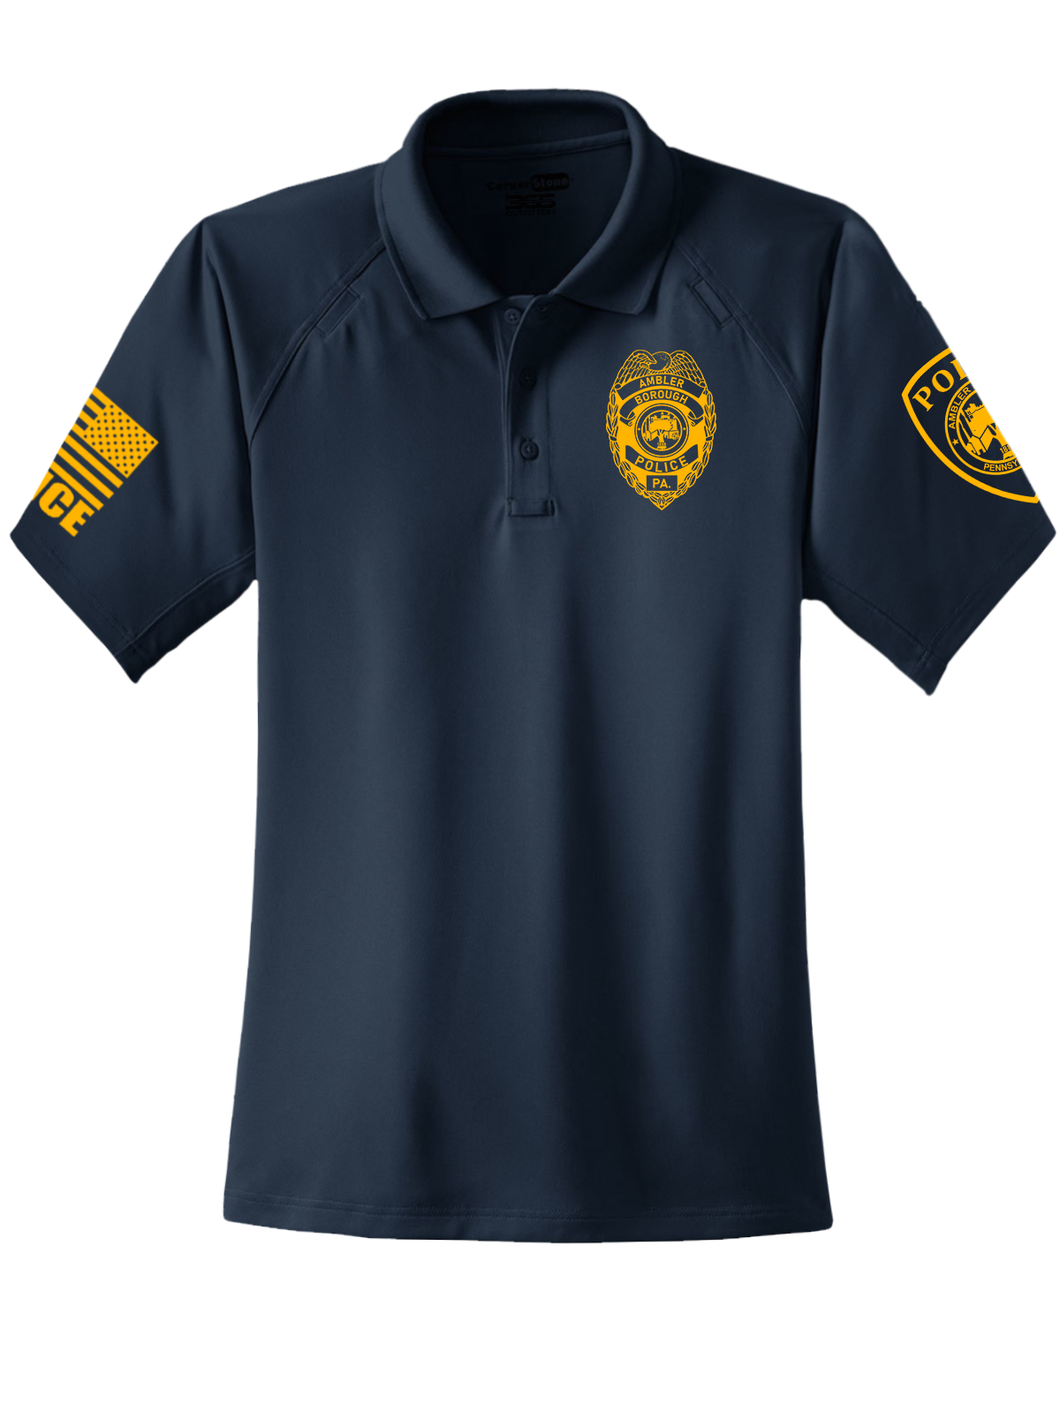 Ambler Borough Police Supervisor Tactical Polo - №365 Outfitters